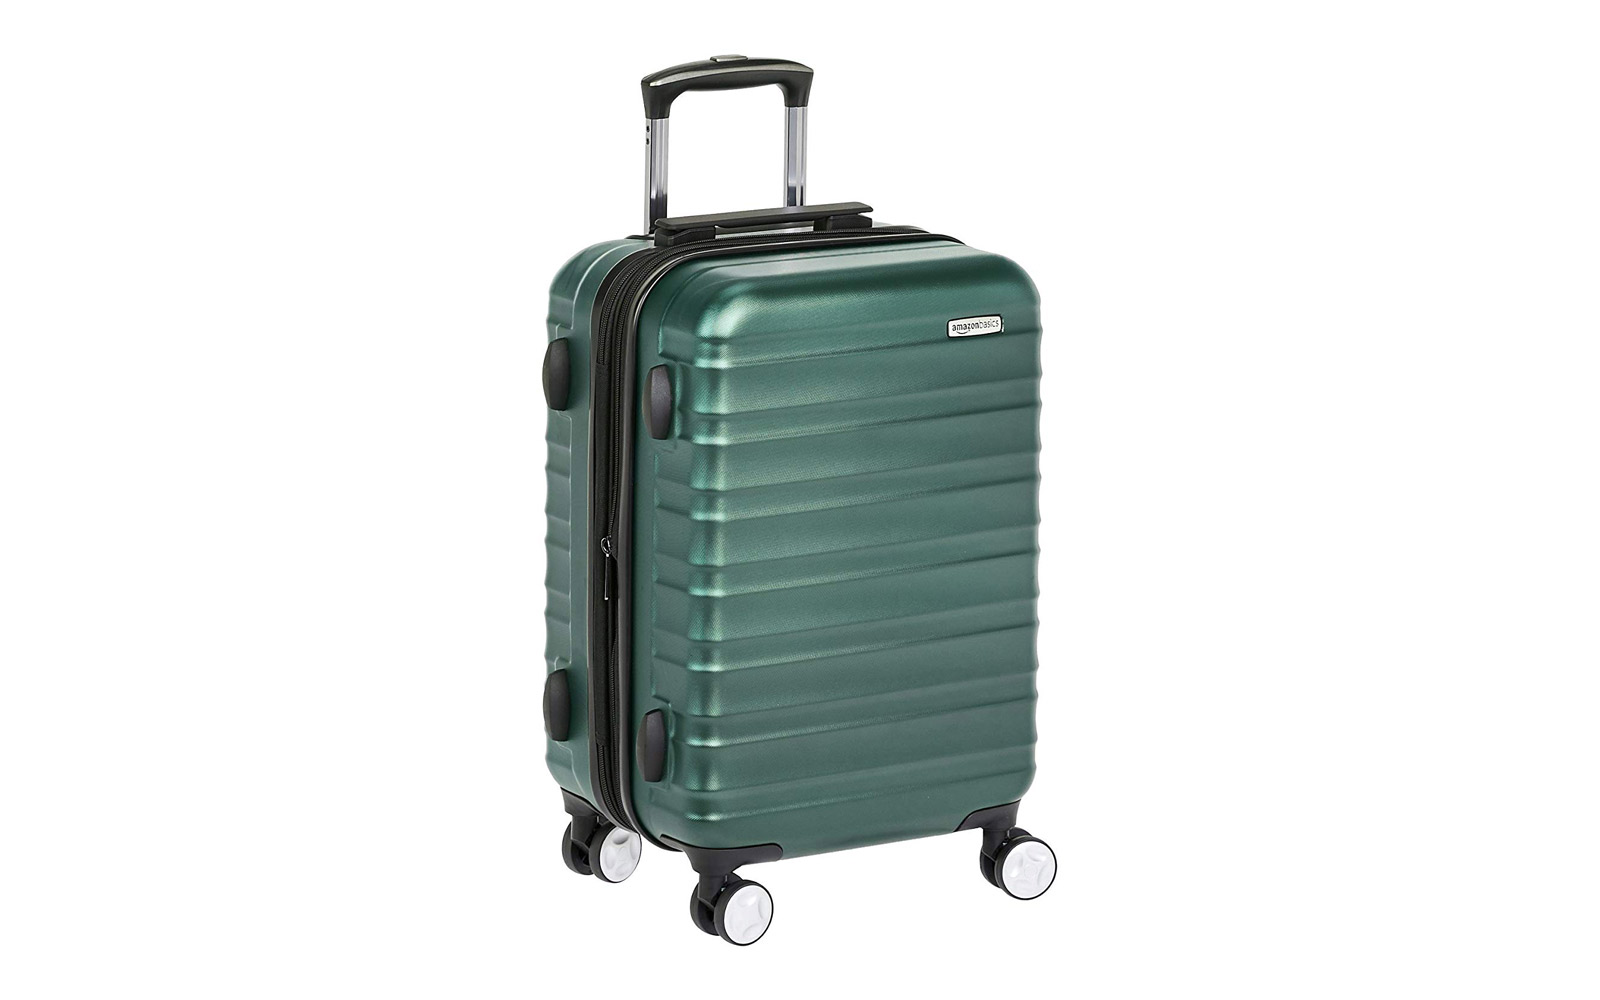 Best Affordable Carry-on: AmazonBasics 20-inch Hardside Spinner Luggage